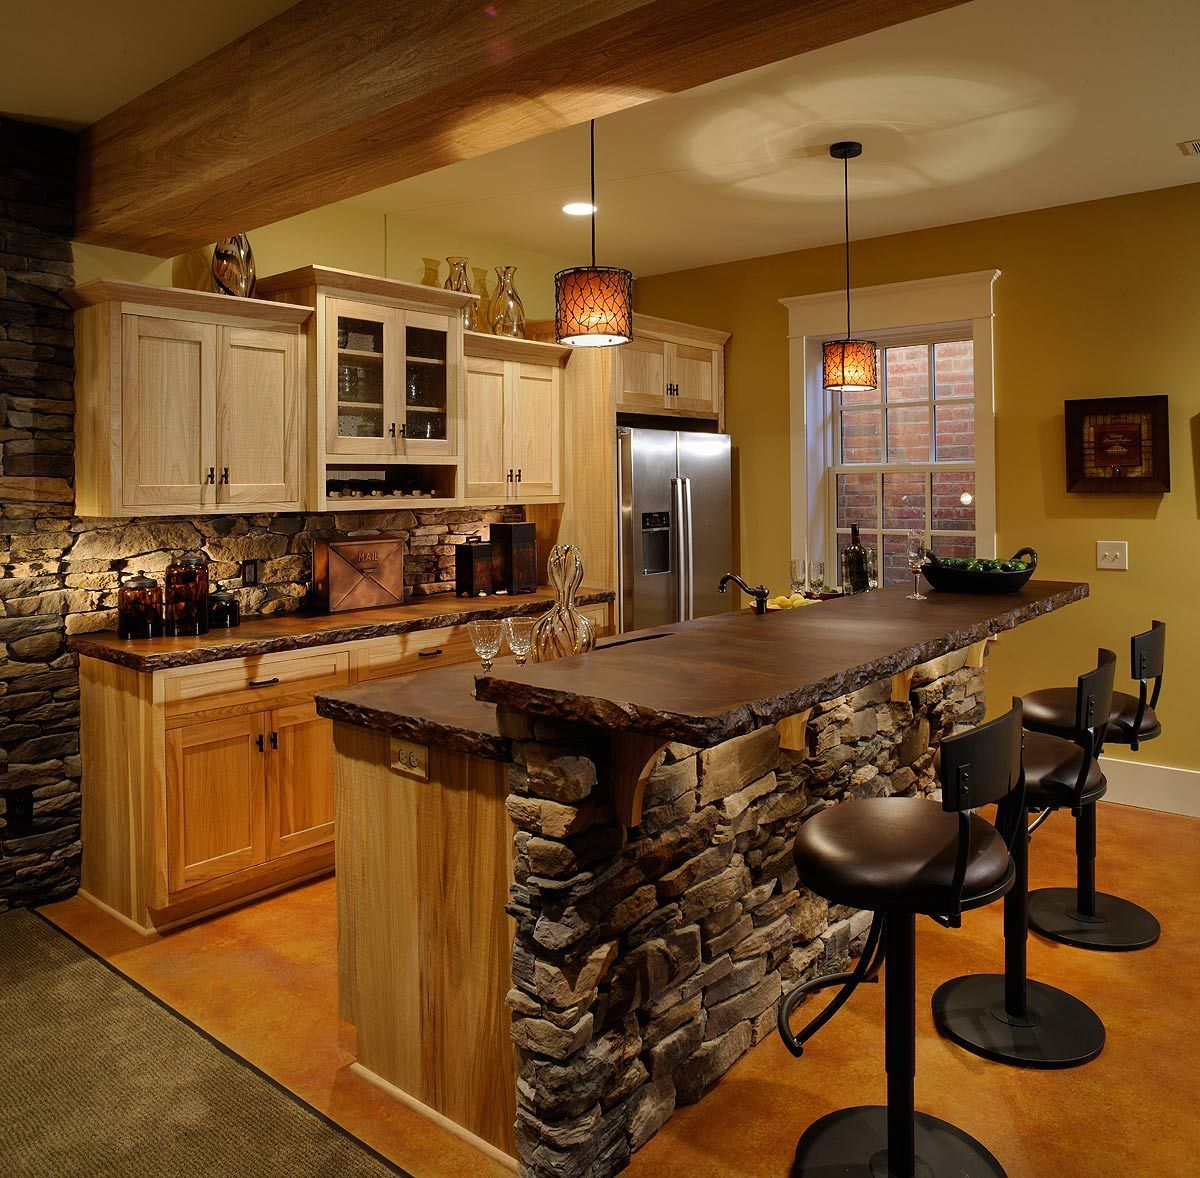 Cabin Country Style Kitchen by Mullet Cabinet in Millersburg, Ohio on country primitive home decorating ideas, country green kitchen pinterest, country style kitchens on pinterest, country farm kitchen pinterest,